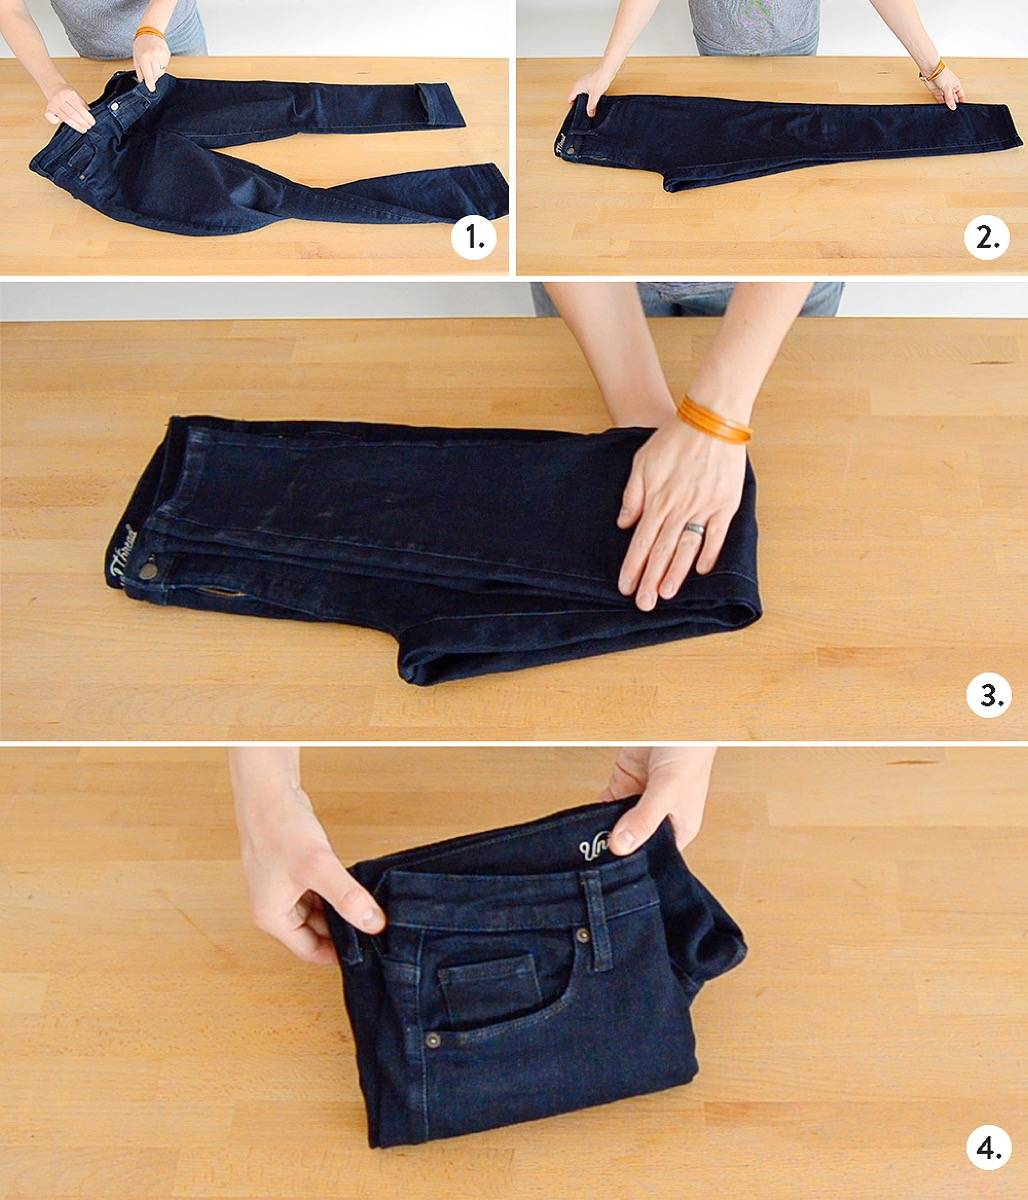 How to fold pants